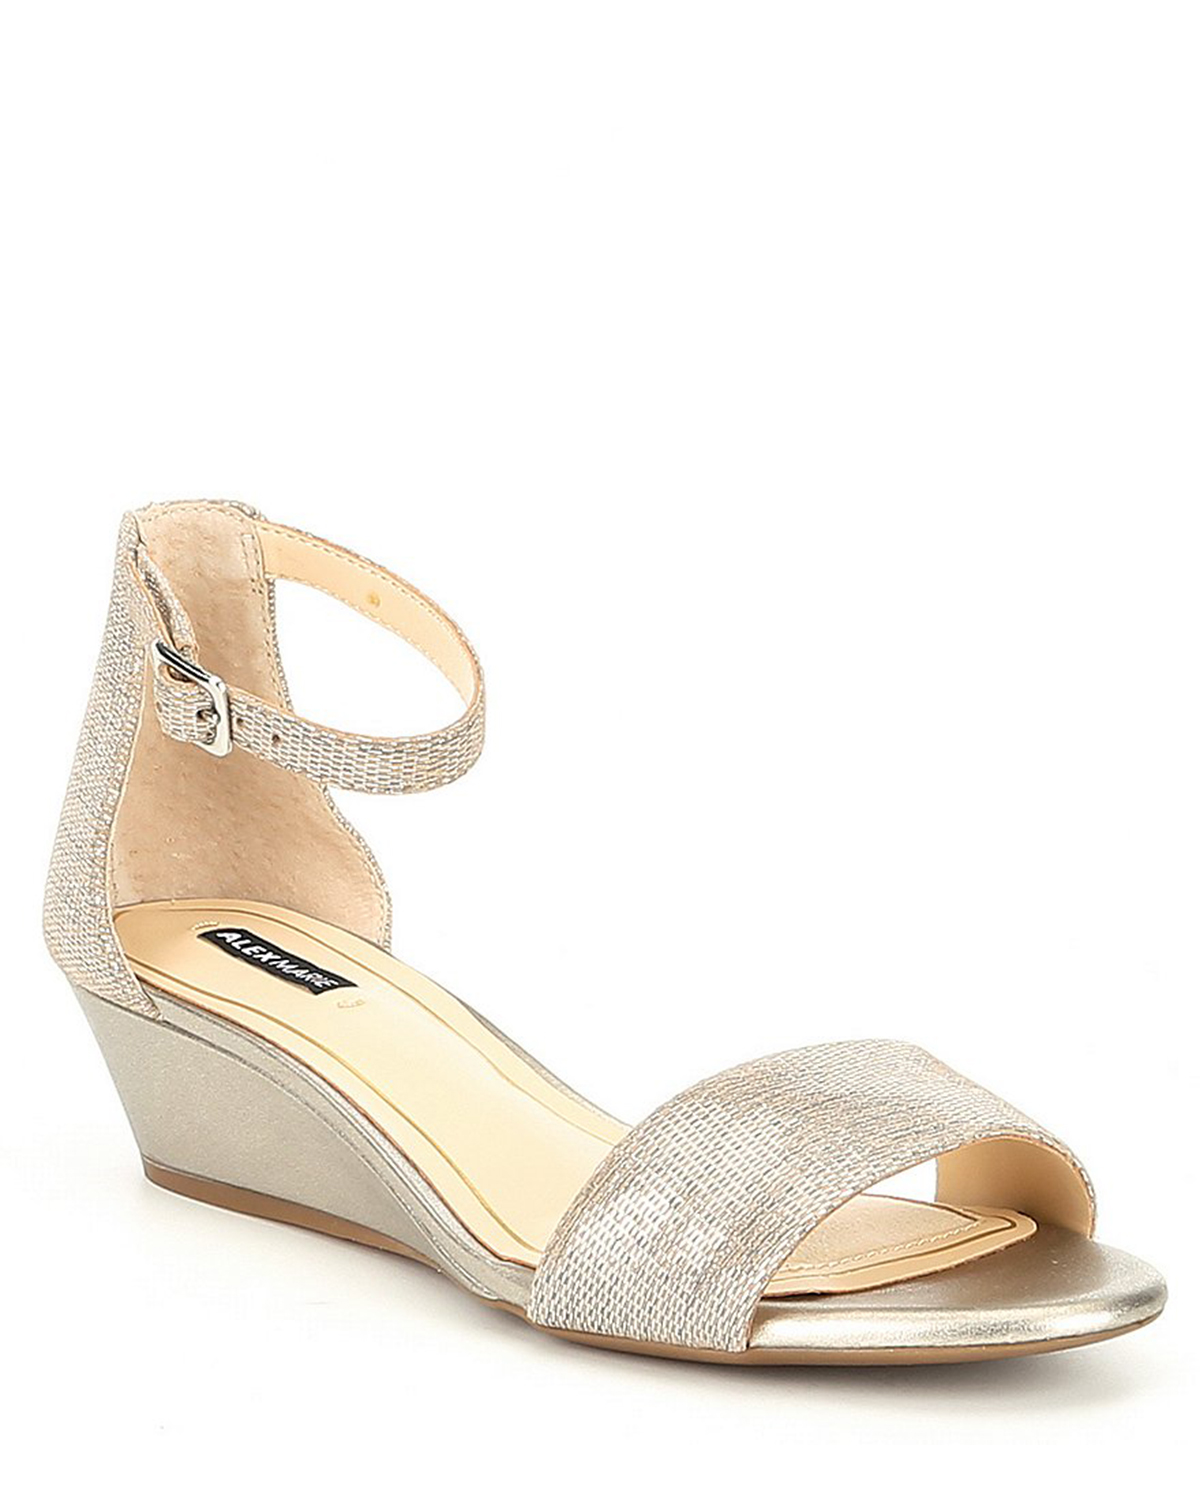 wedding wedges with metallic leather ankle strap